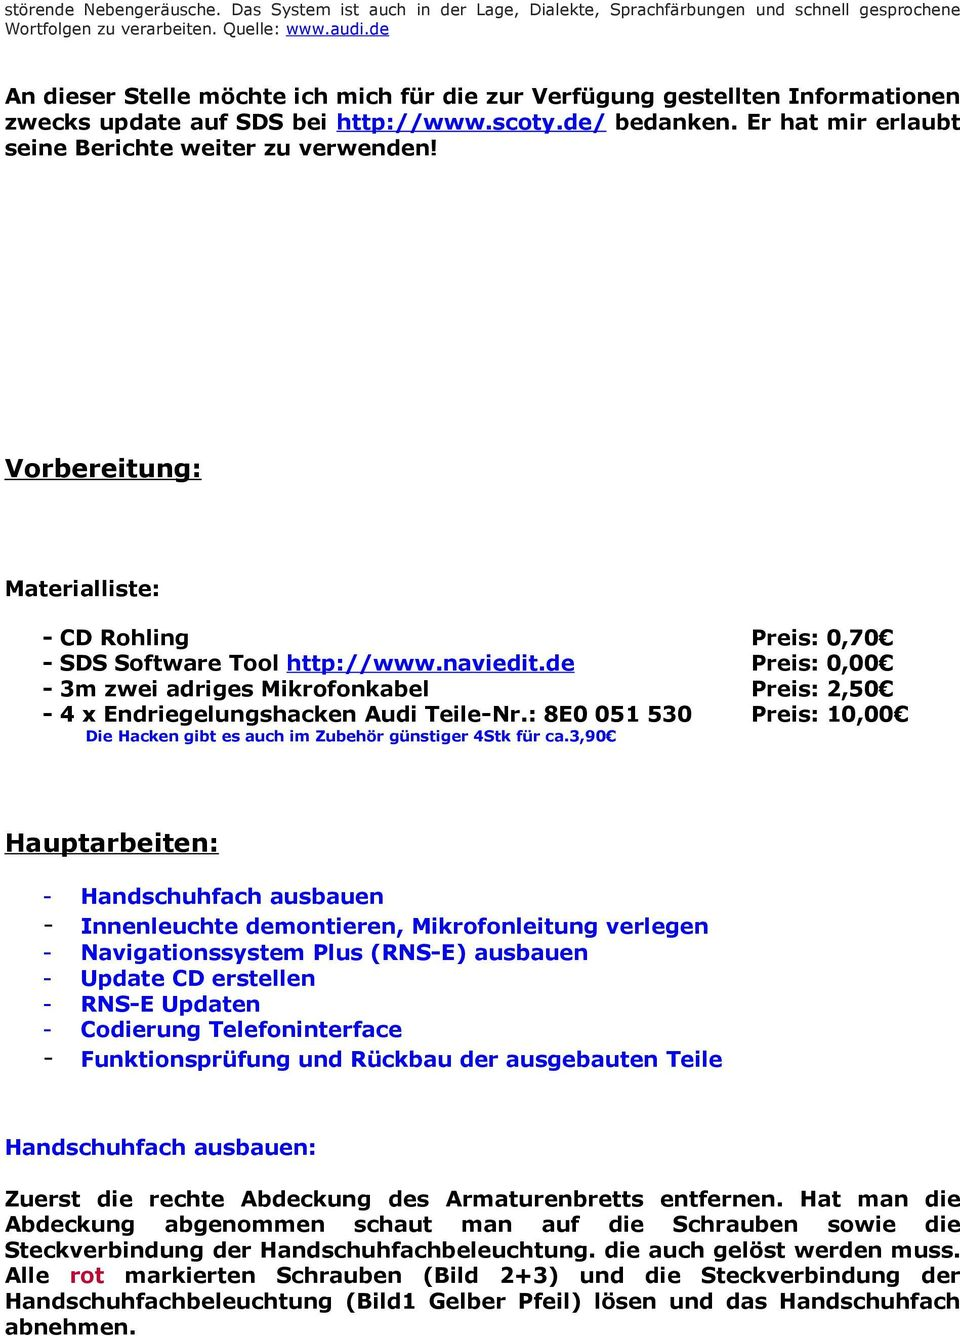 Charming Superb Vorbereitung: Materialliste: CD Rohling SDS Software Tool Http://www.